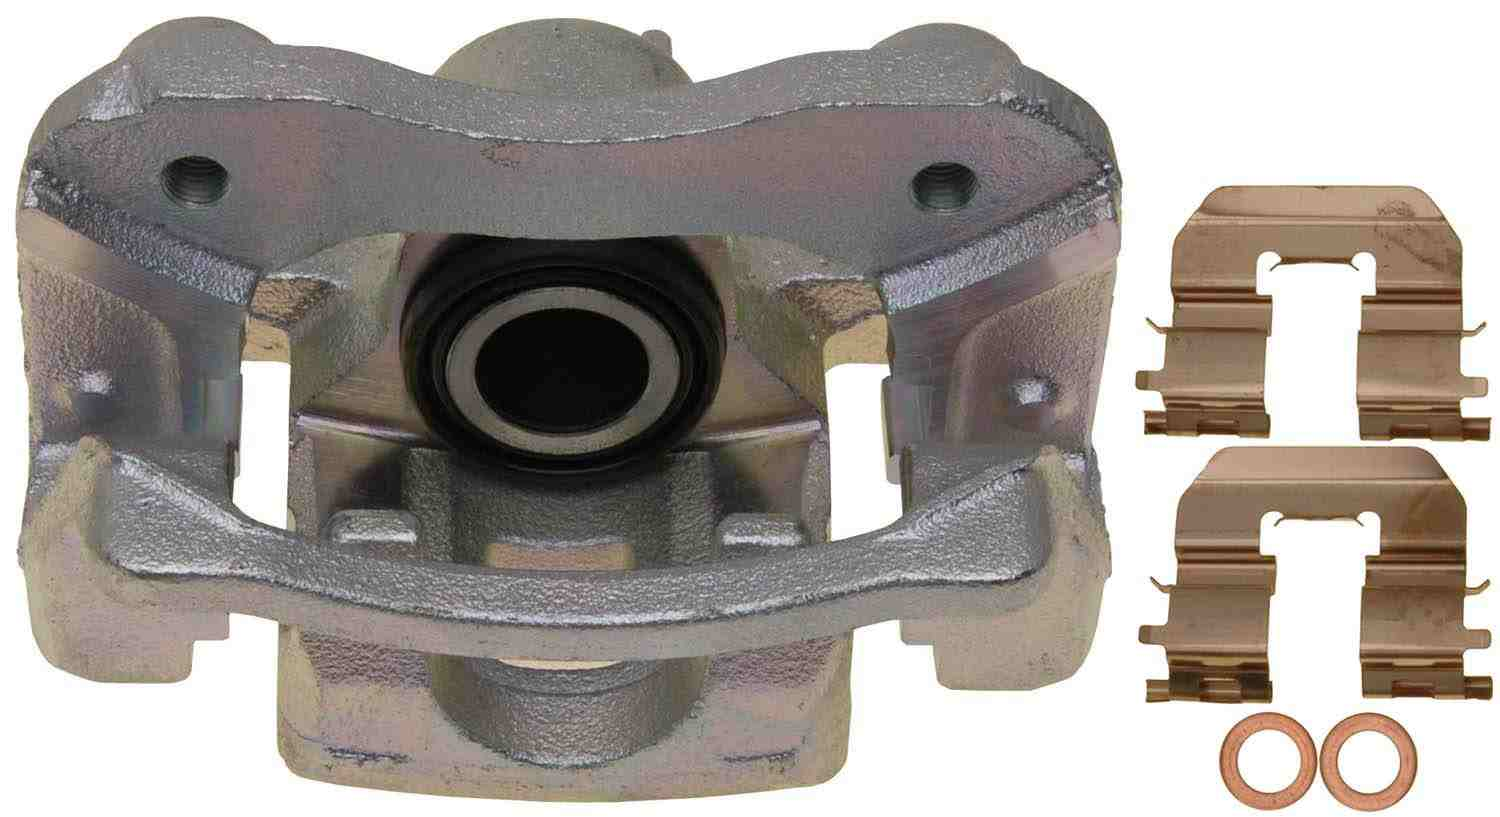 ACDELCO PROFESSIONAL BRAKES - Reman Friction Ready Non-Coated Disc Brake Caliper (Rear Left) - ADU 18FR12318